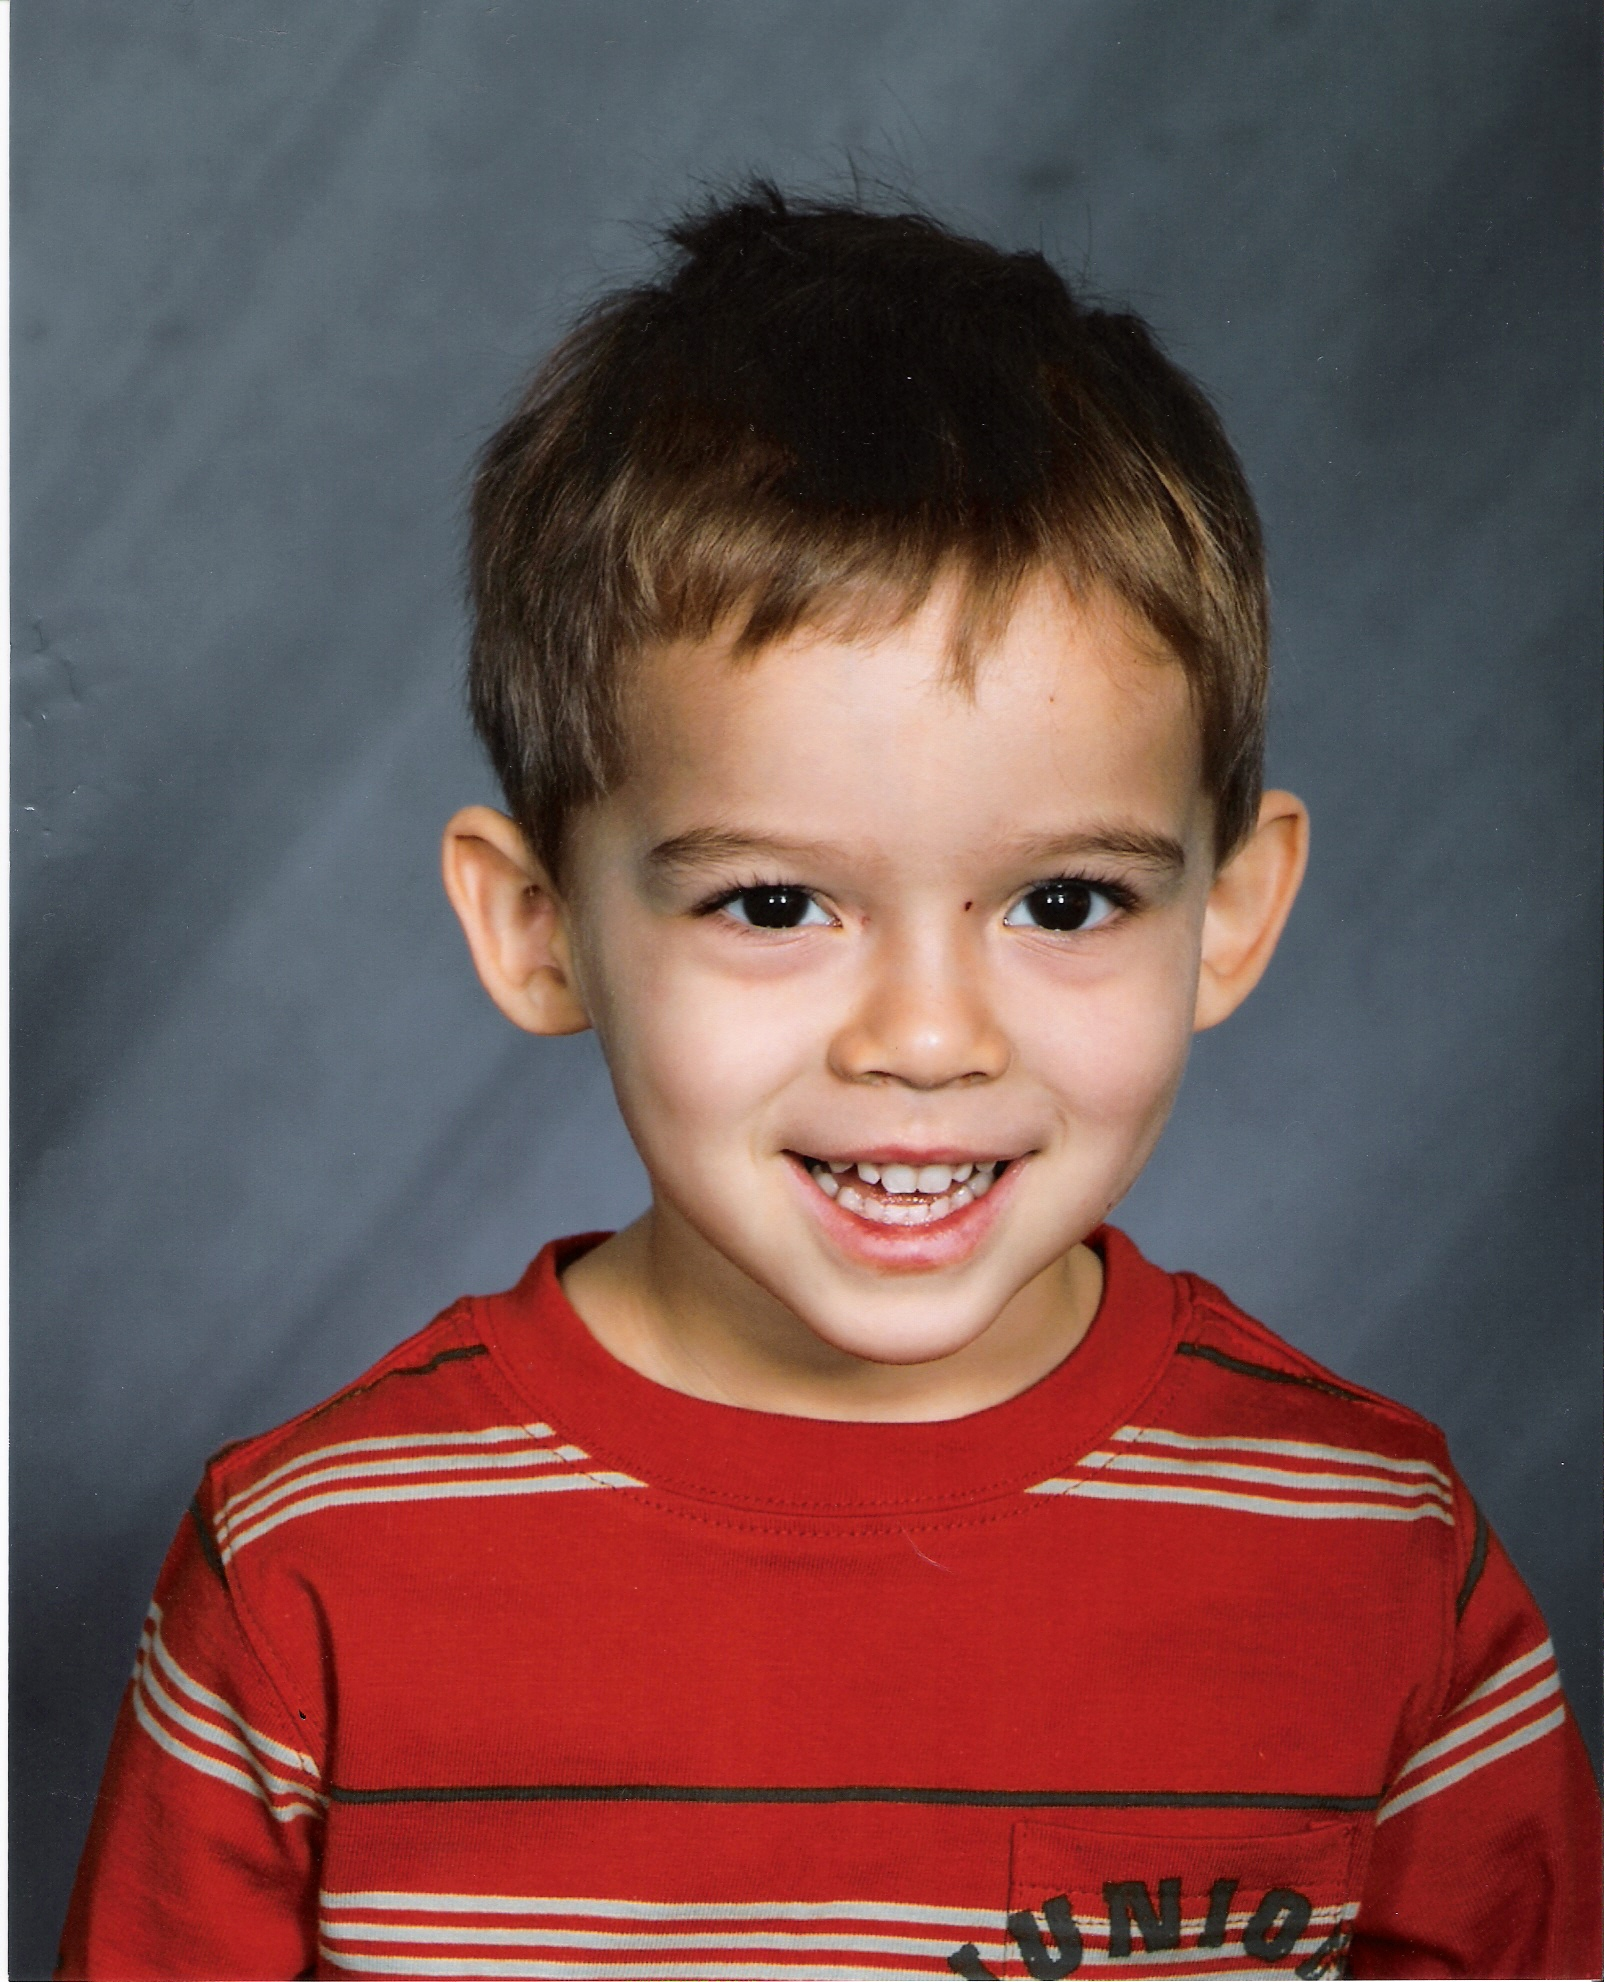 School photo, William John Scott, United Methodist Church Preschool, October 2007